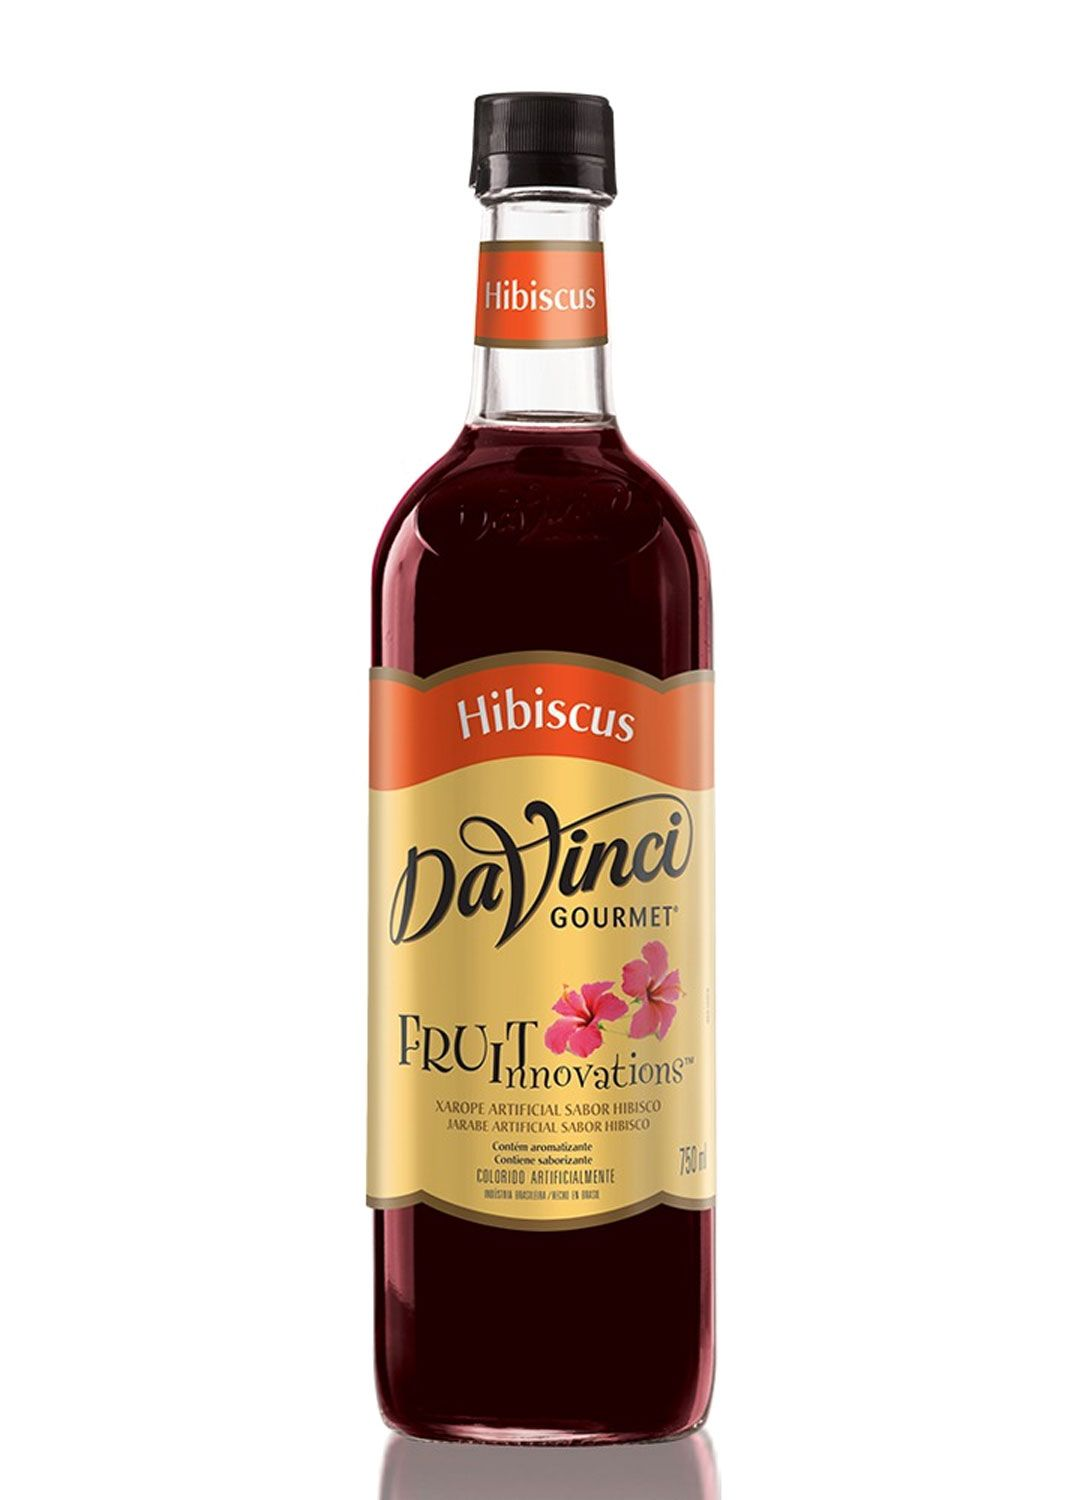 Xarope p/ Drinks Da Vinci - Hibiscus  - 750 ml